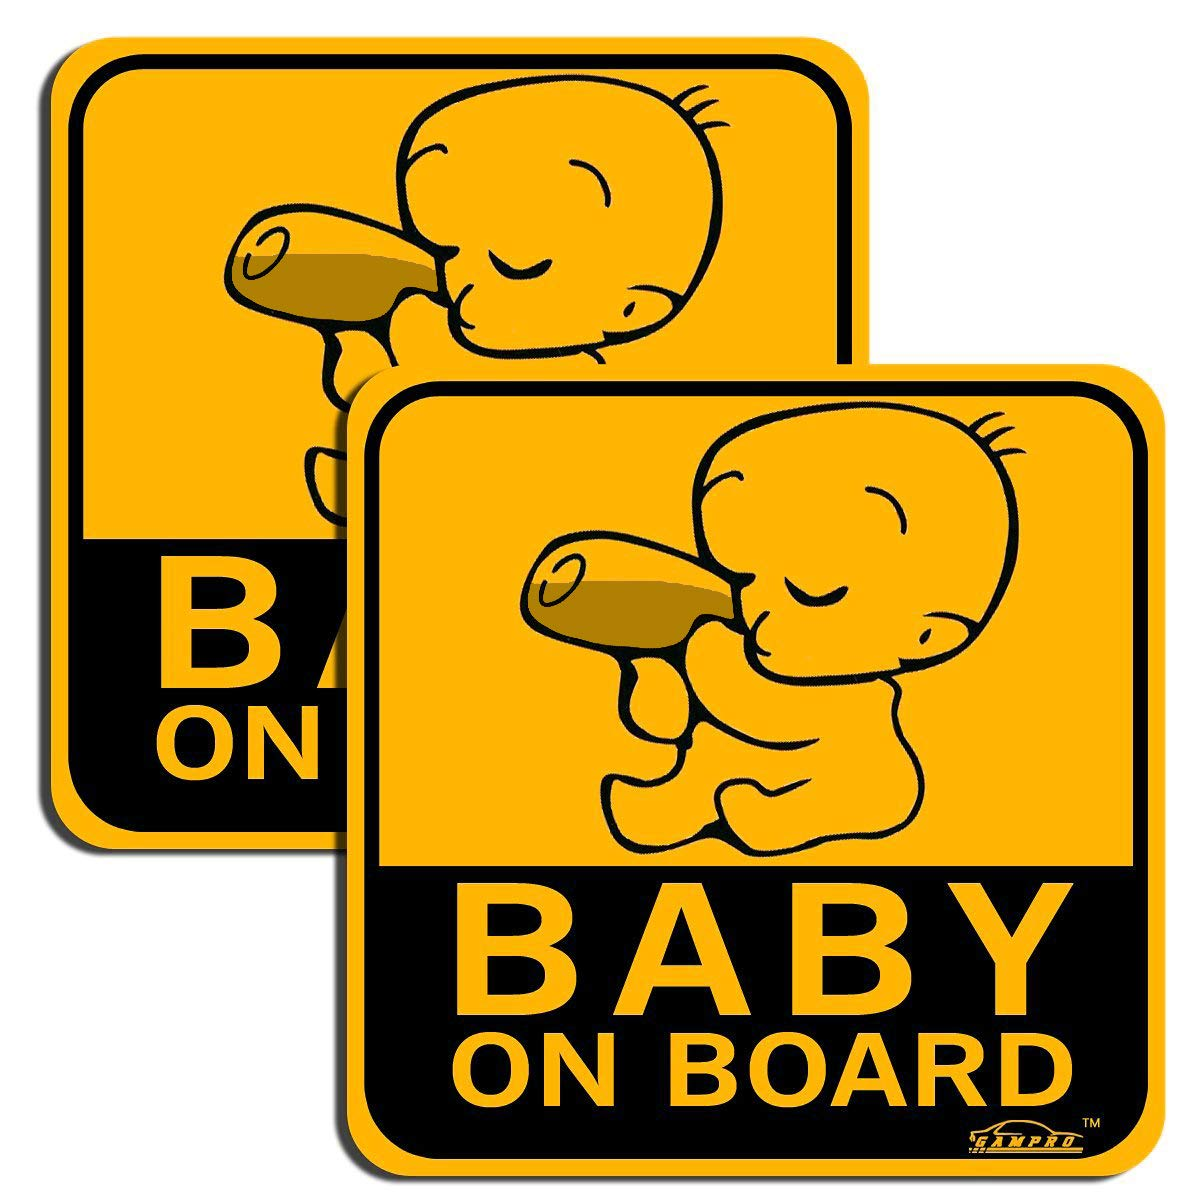 Reflective Vehicle Car Sign Sticker Bumper for New Parents Reduce Road Rage and Accidents for New Parent and Child /¡/­ GAMPRO Lovely BABY ON BOARD Reflective Vehicle Bumper Magnet 2-Pack